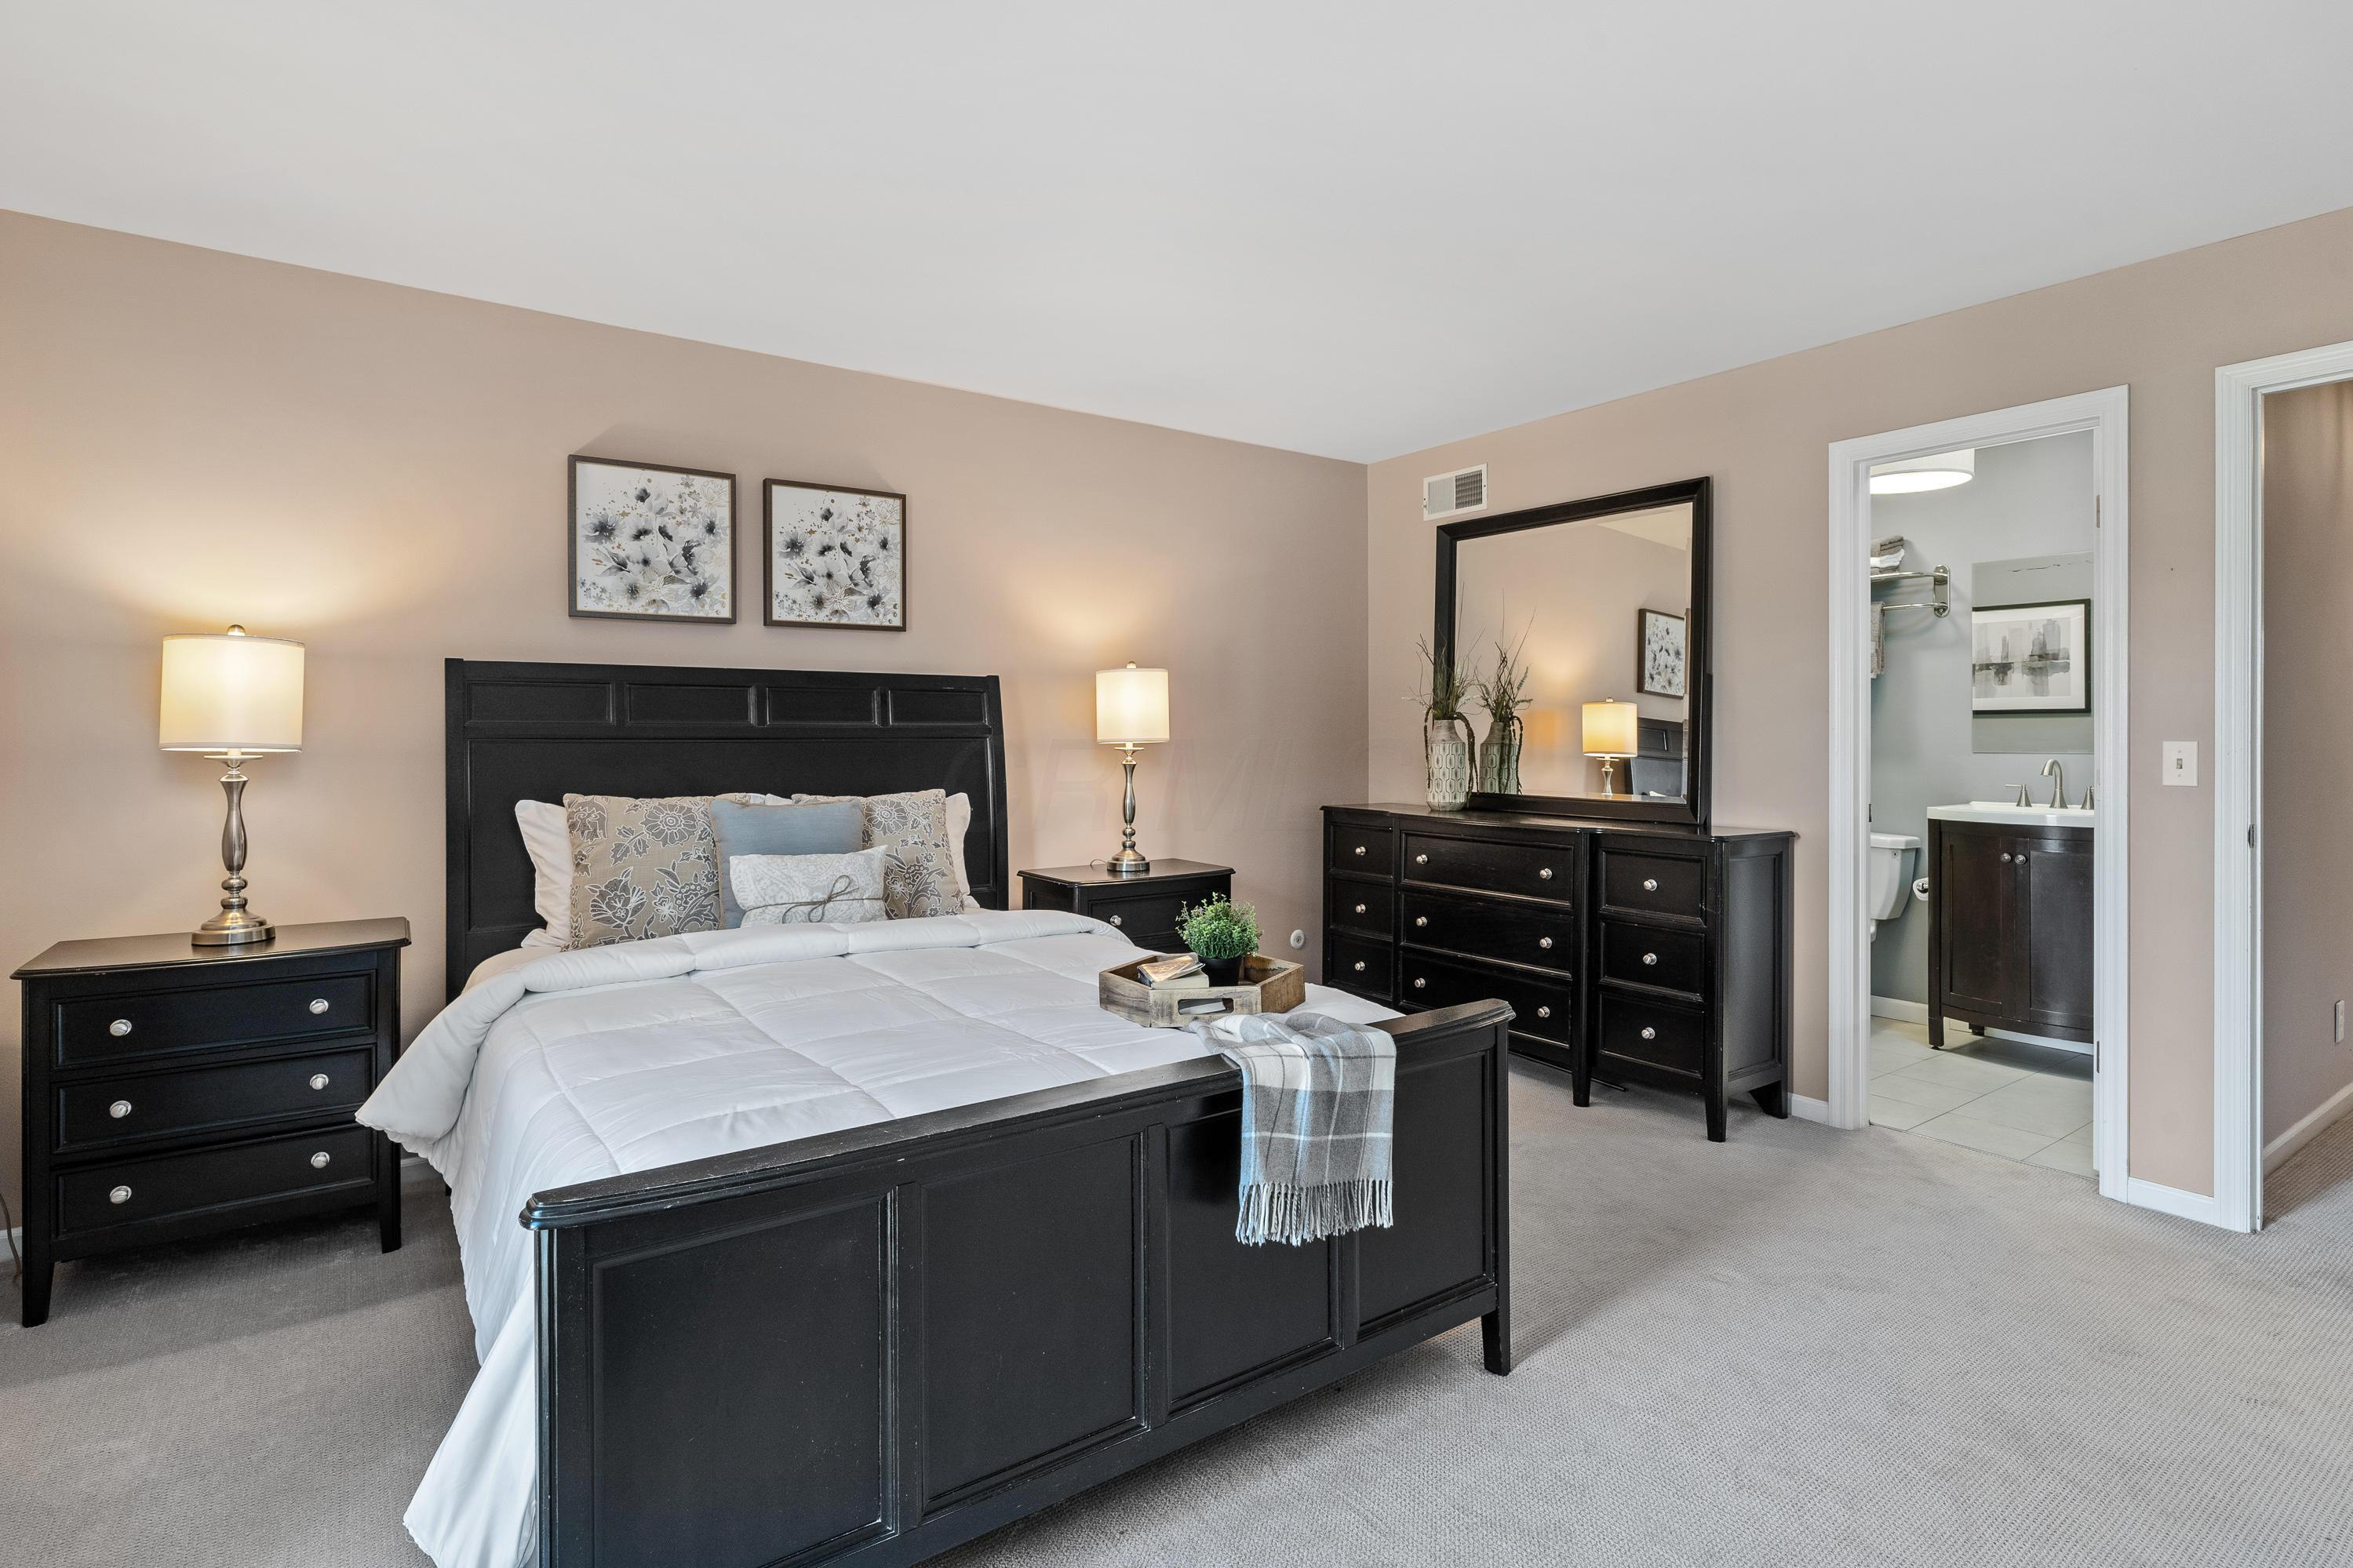 4234 Chaucer Lane, Upper Arlington, Ohio 43220, 2 Bedrooms Bedrooms, ,3 BathroomsBathrooms,Residential,For Sale,Chaucer,220031003